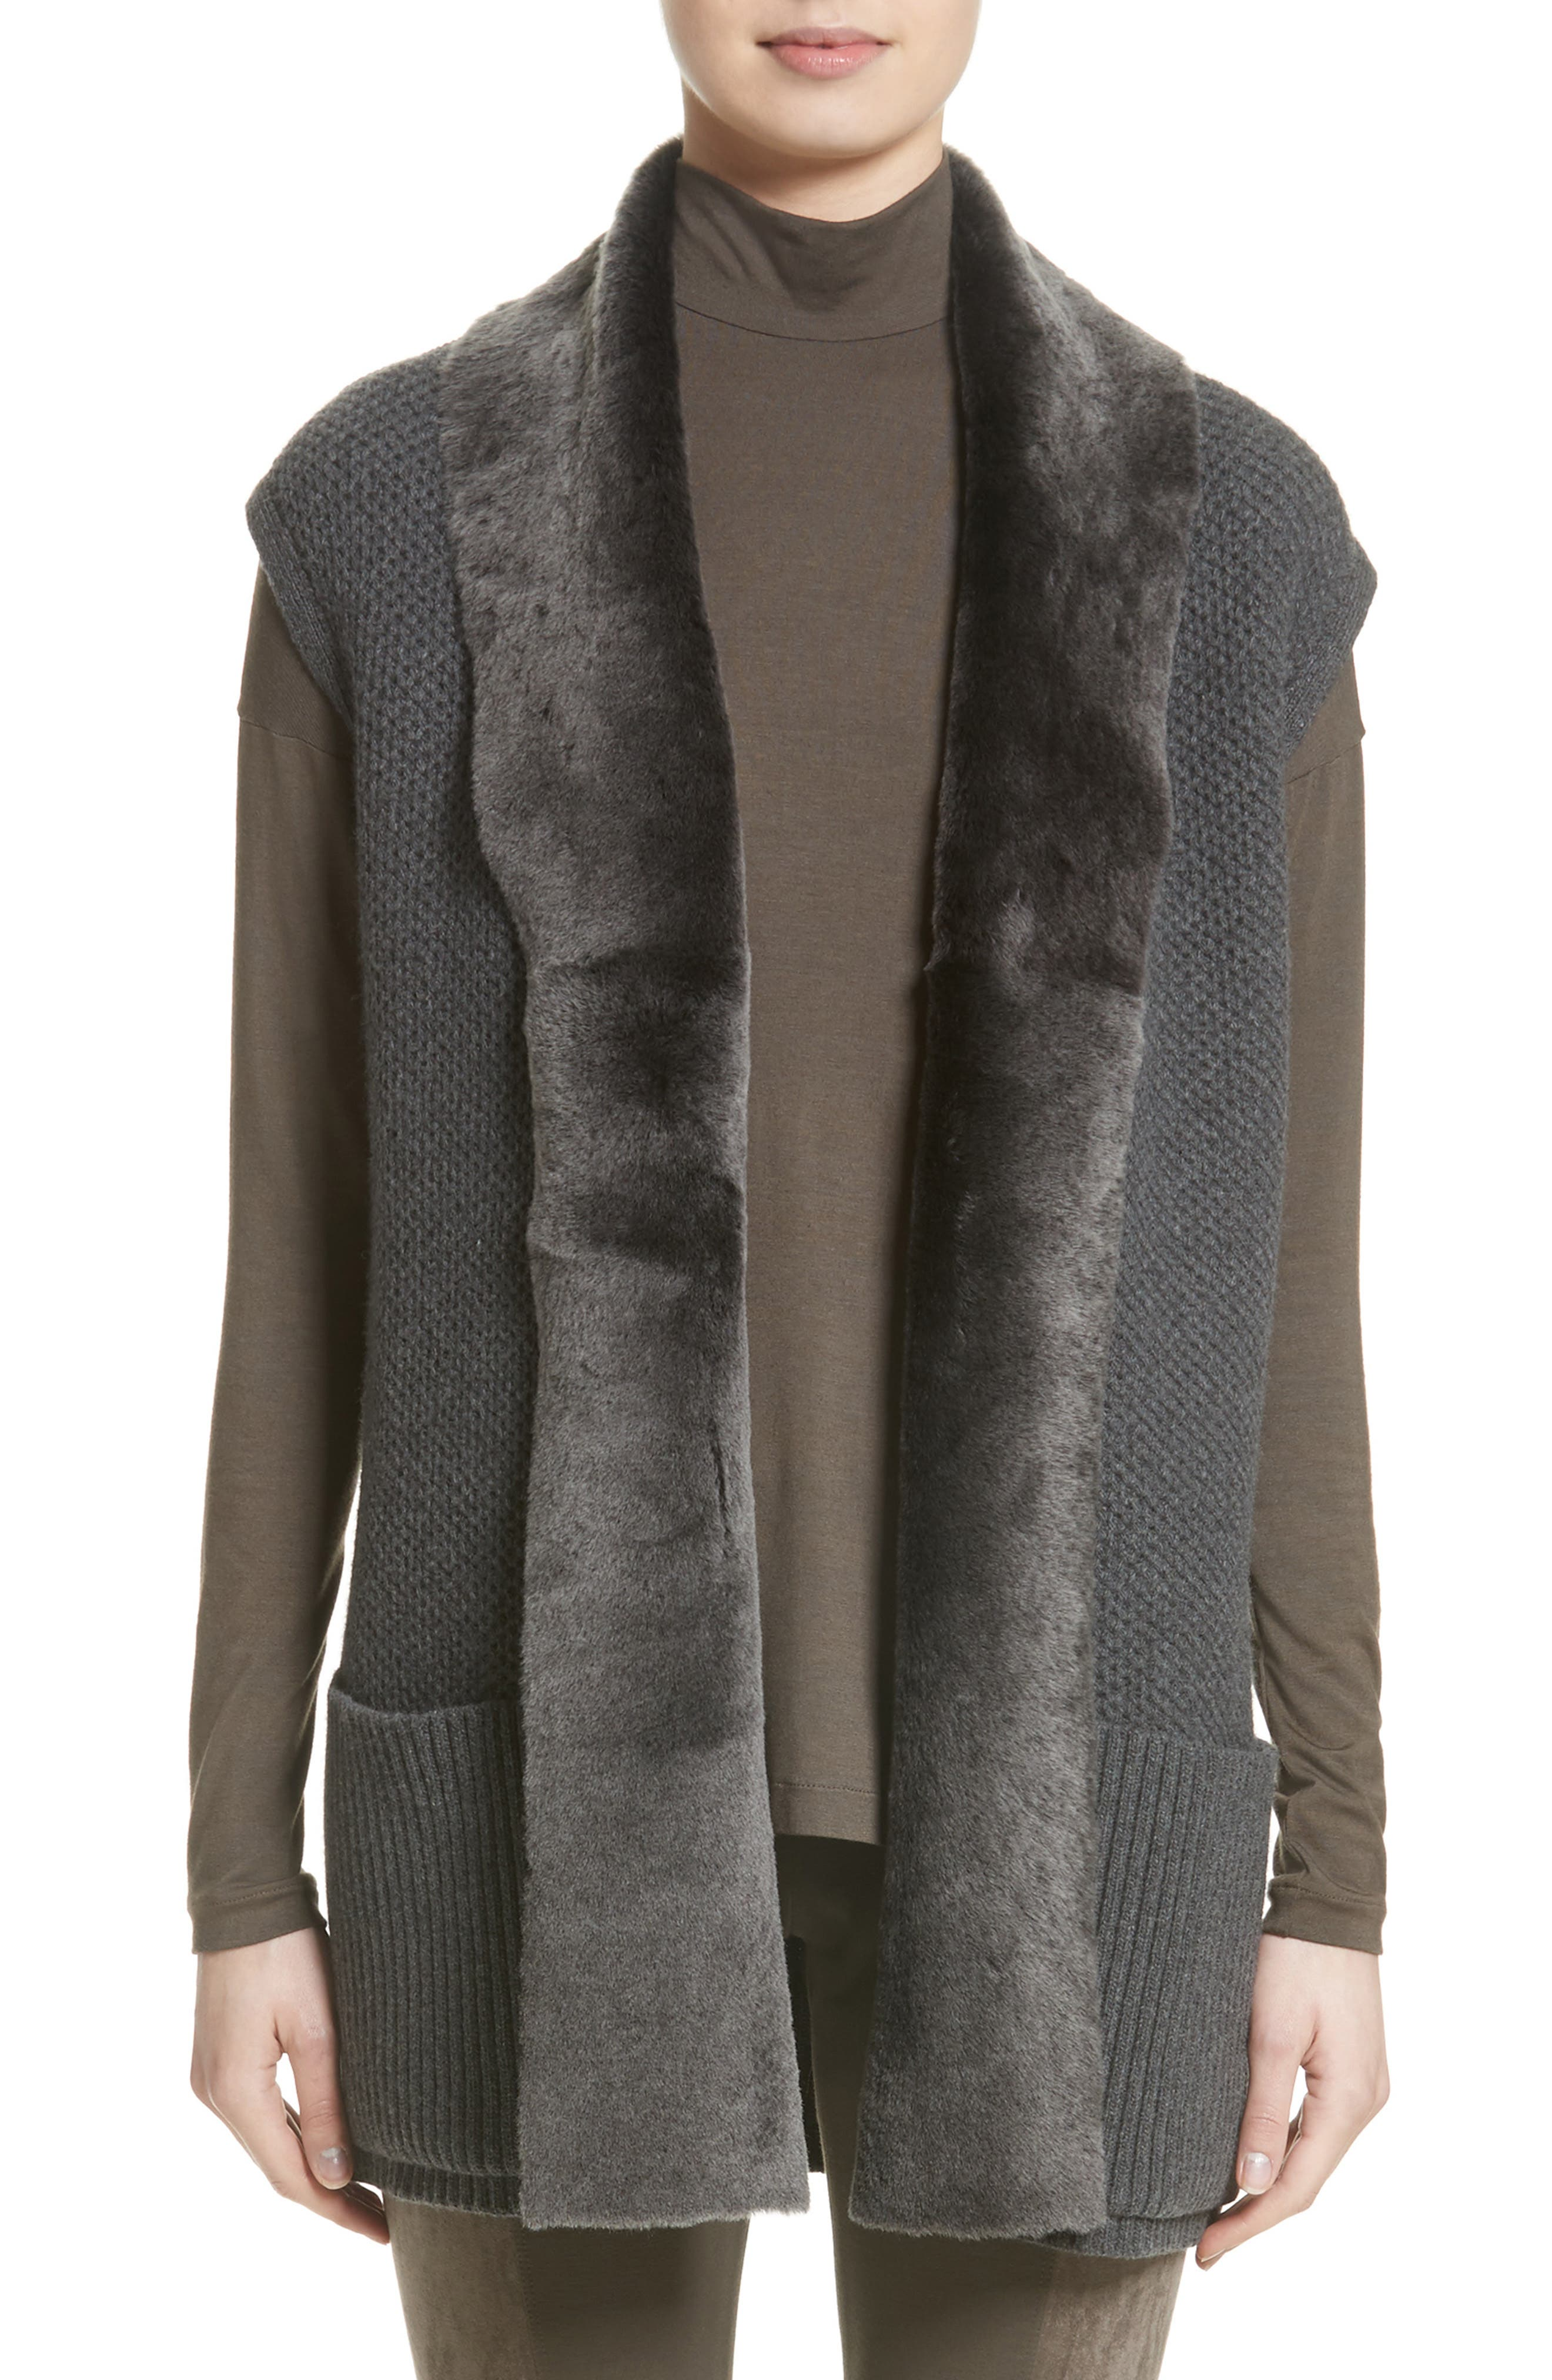 Lafayette 148 New York Merino & Cashmere Vest with Genuine Shearling Trim (Nordstrom Exclusive)